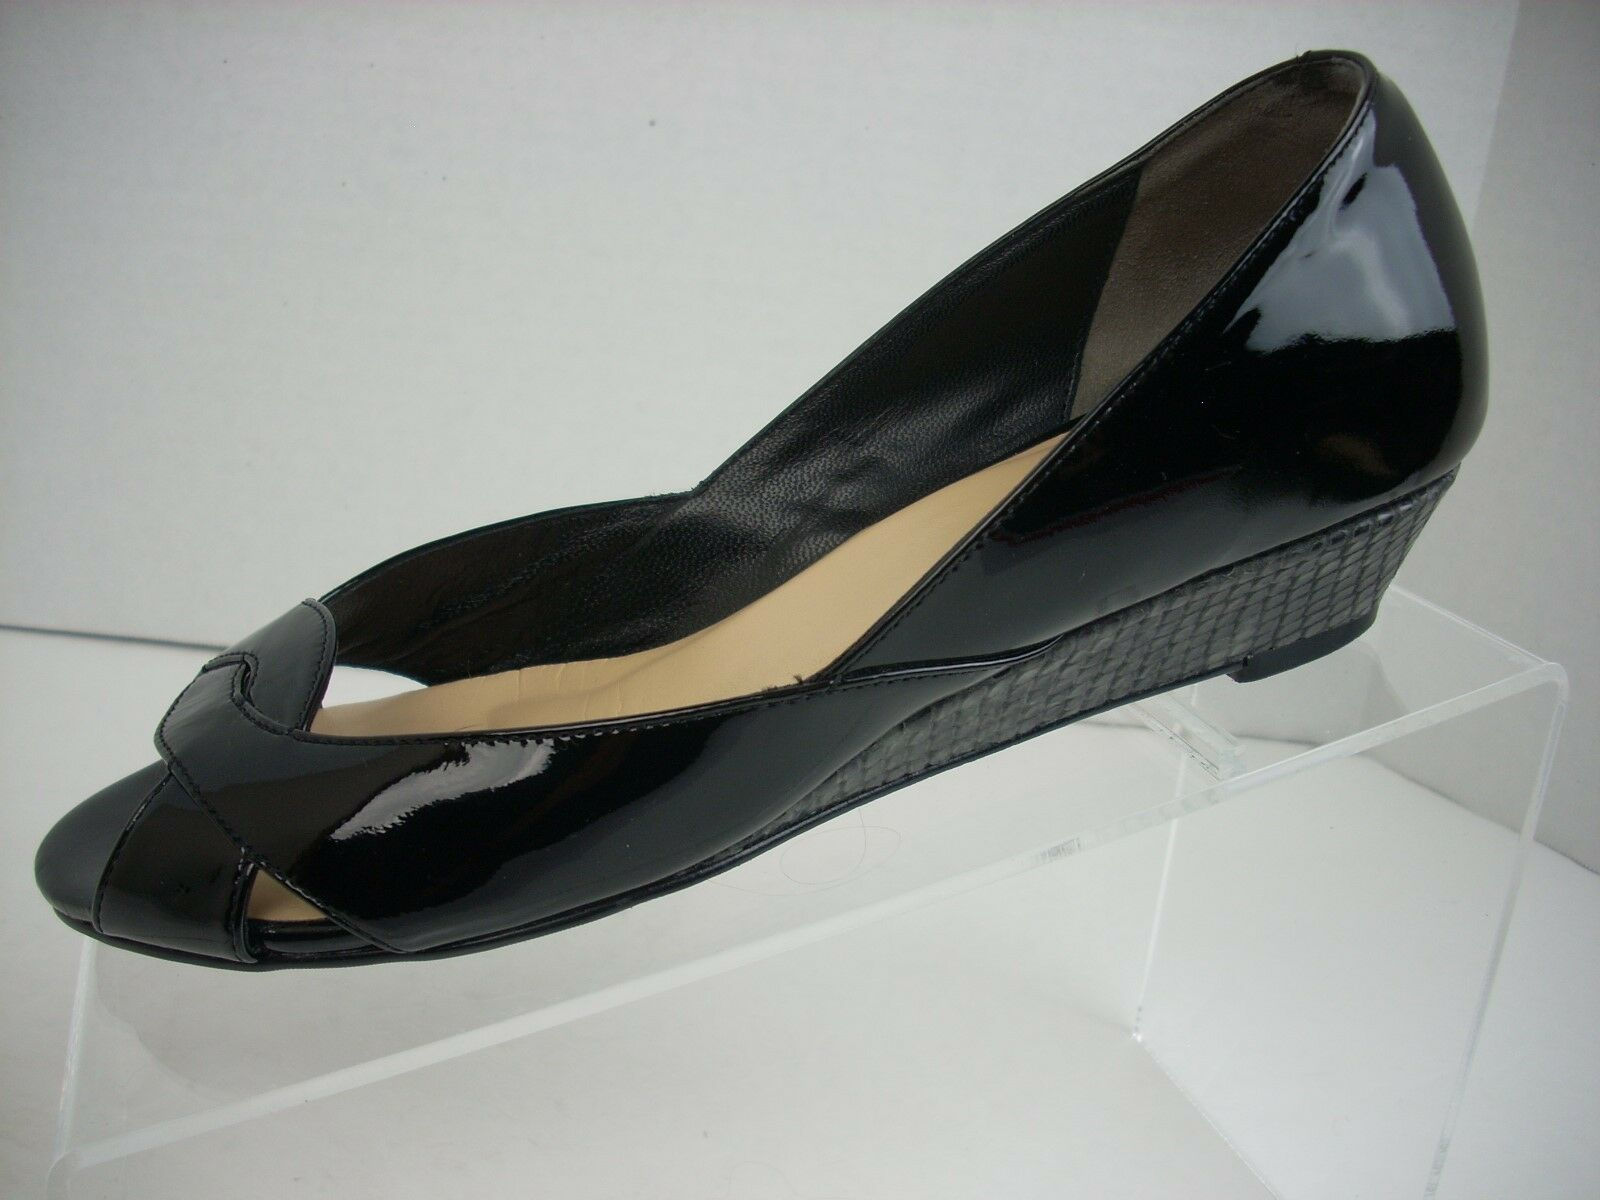 COLE HAAN Wedge Heels Wouomo Dimensione 6.5 B nero Patent Open Toe Career Box  178